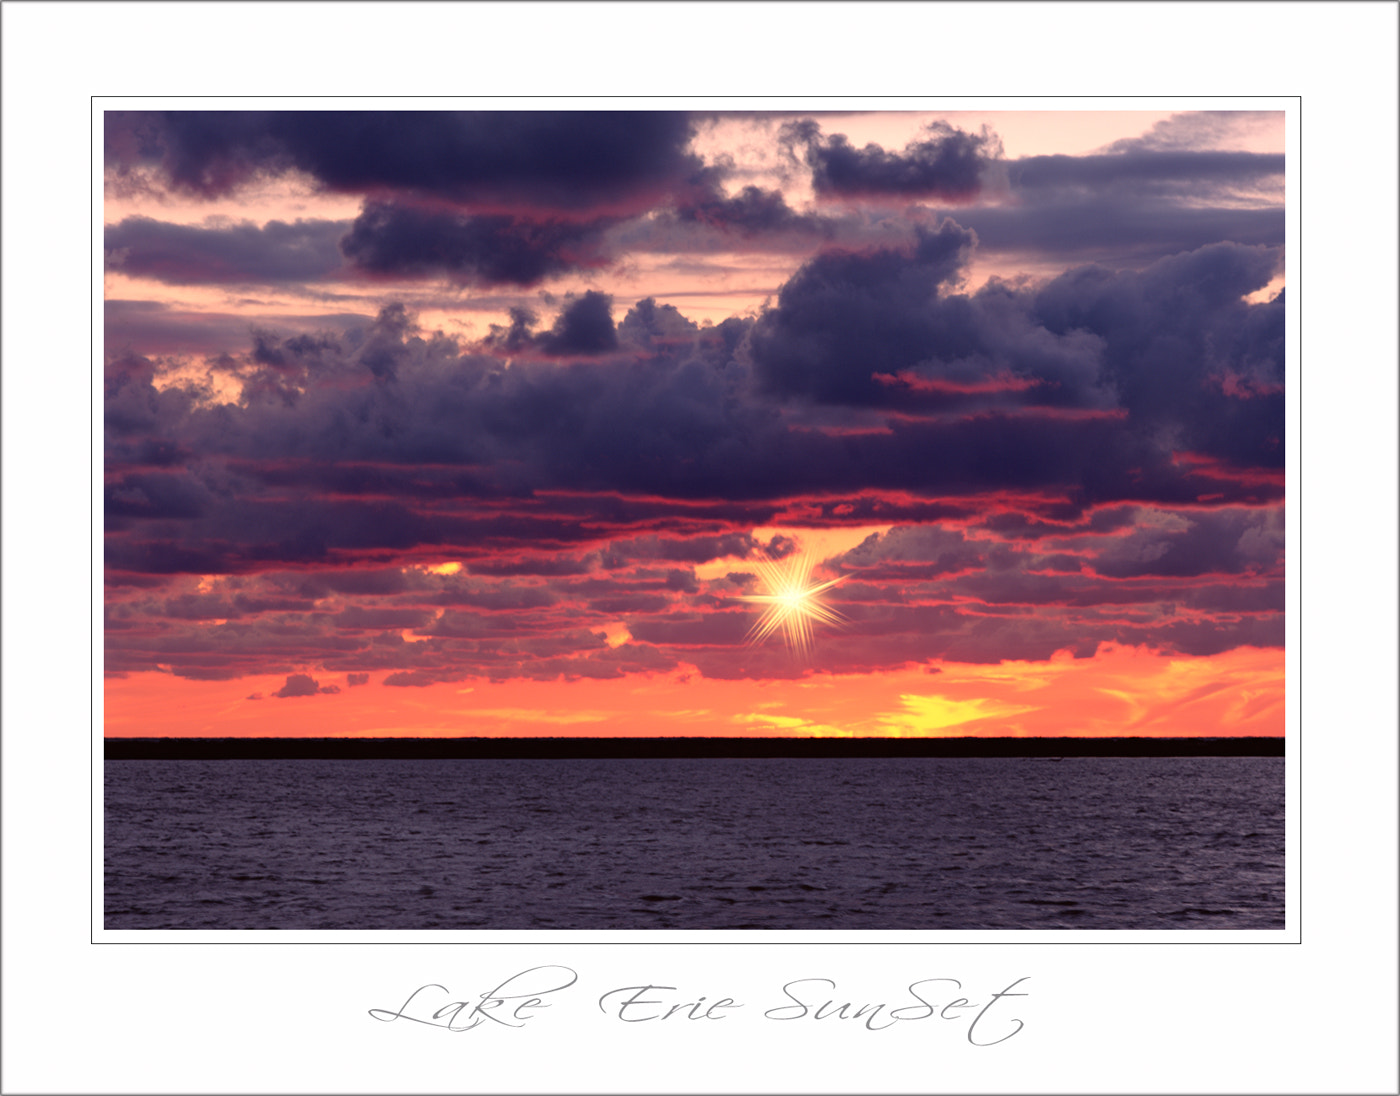 Photograph lake erie sunset by parminder singh on 500px